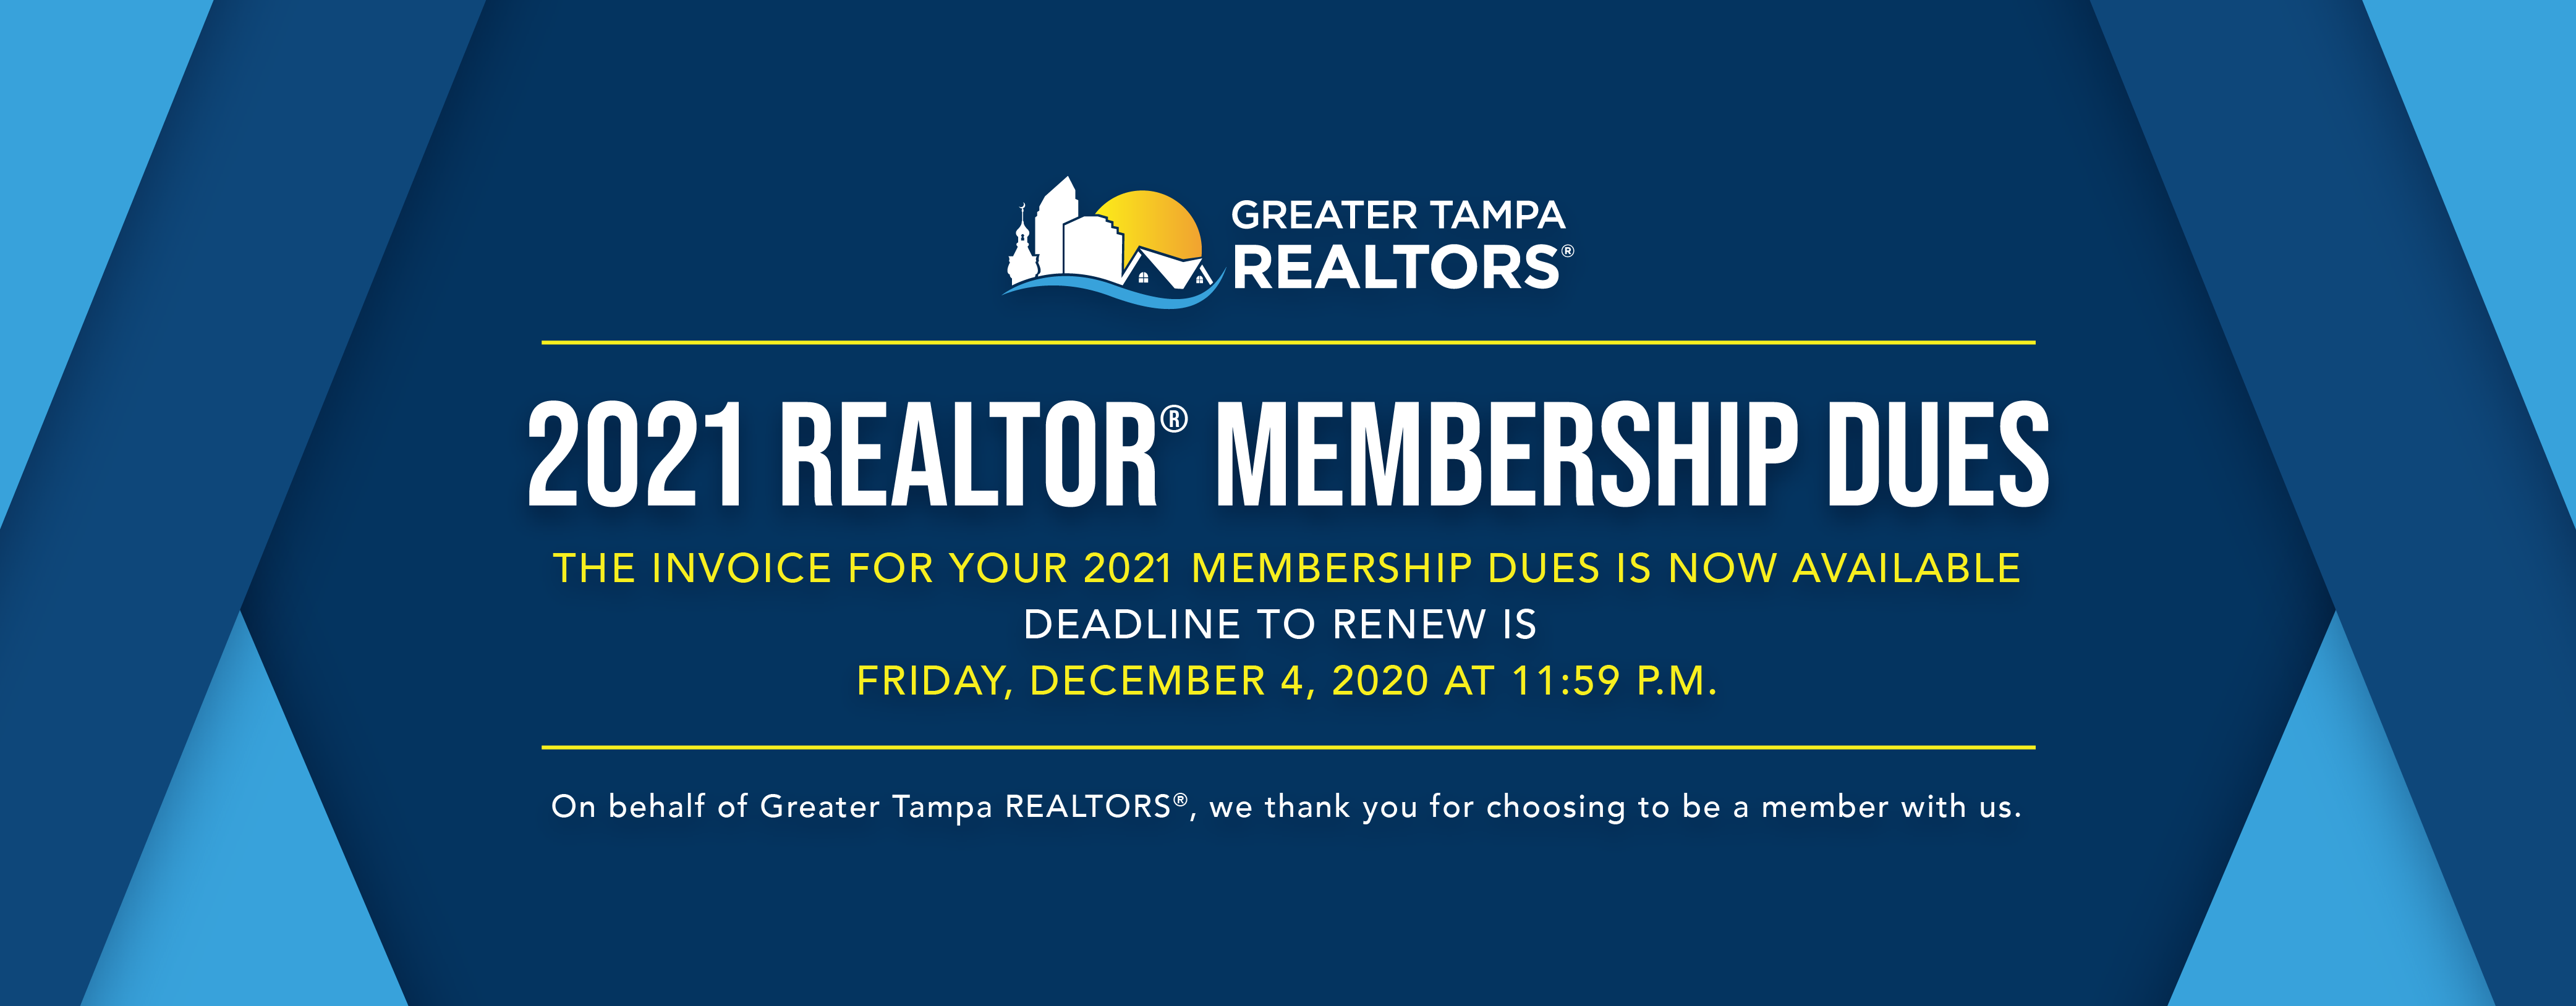 2021 Membership Dues. The invoice for your 2021 Membership Dues is now Available. Deadline to renew is Friday, December 4, 2020 at 11:59 p.m. On behalf of Greater Tampa Realtors, we thank you for choosing to be a member with us.